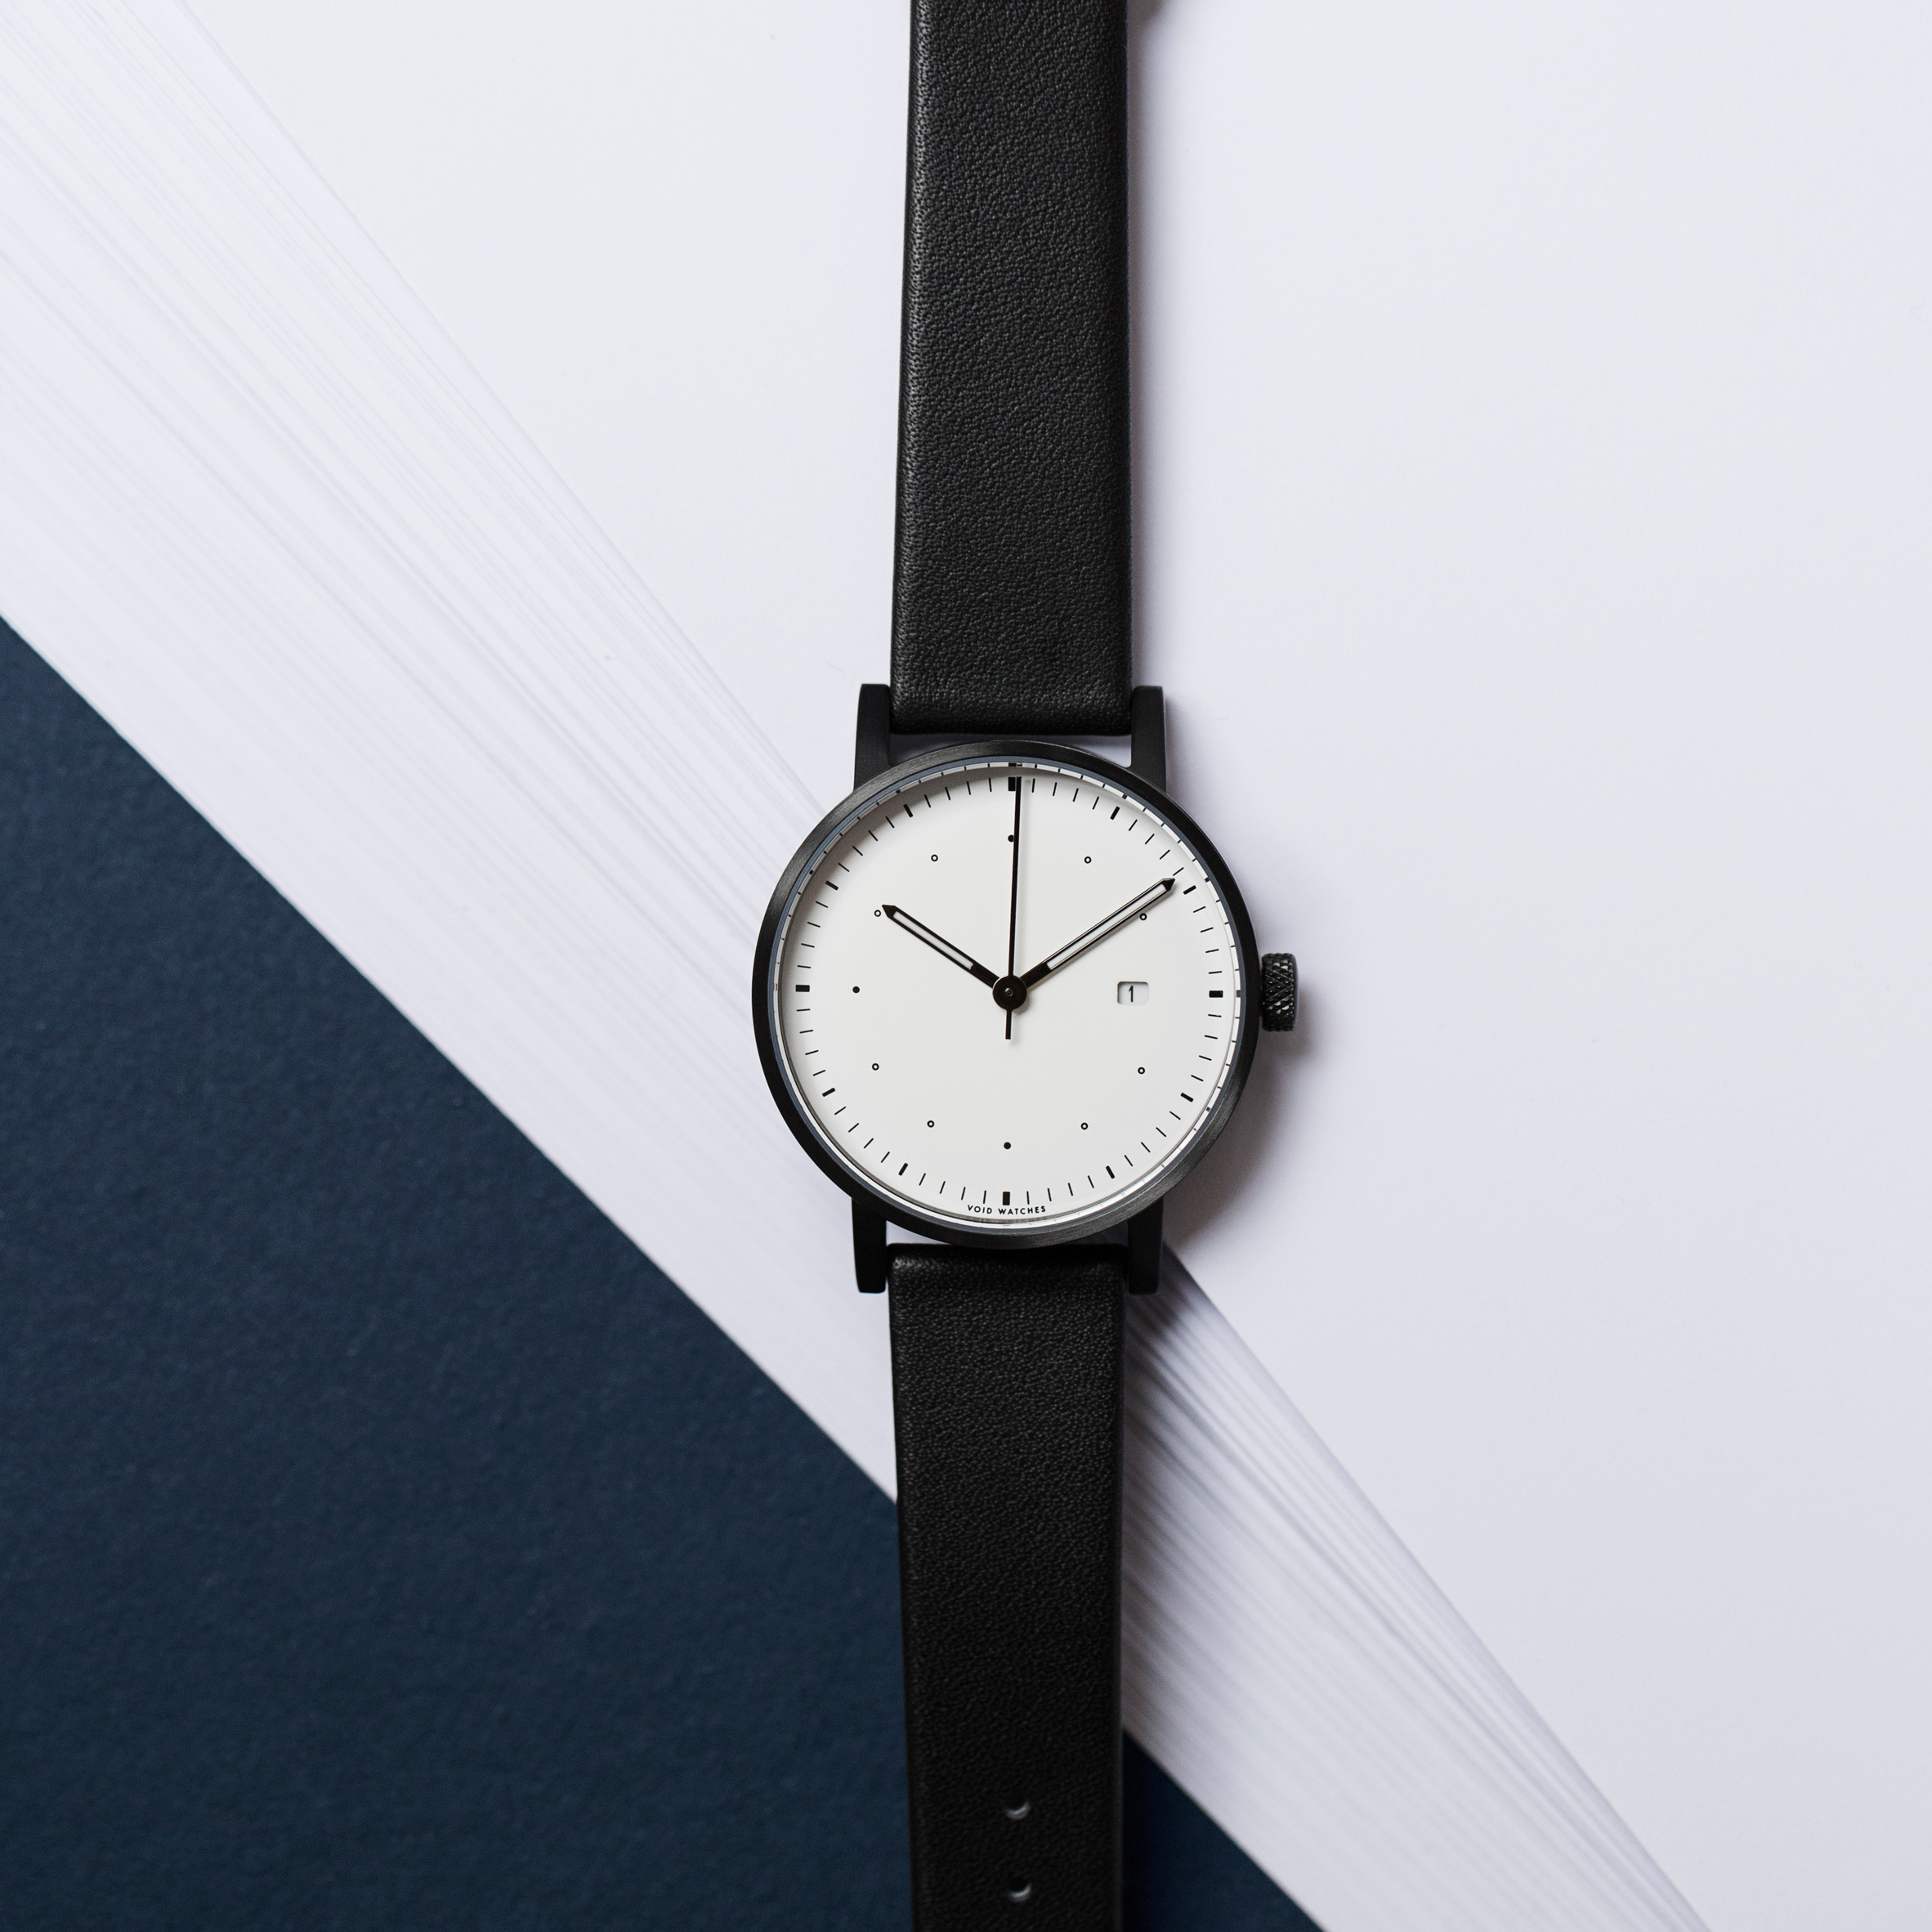 their designs danish elegant scandinavian design watches famous and are simple for obstructive pin non